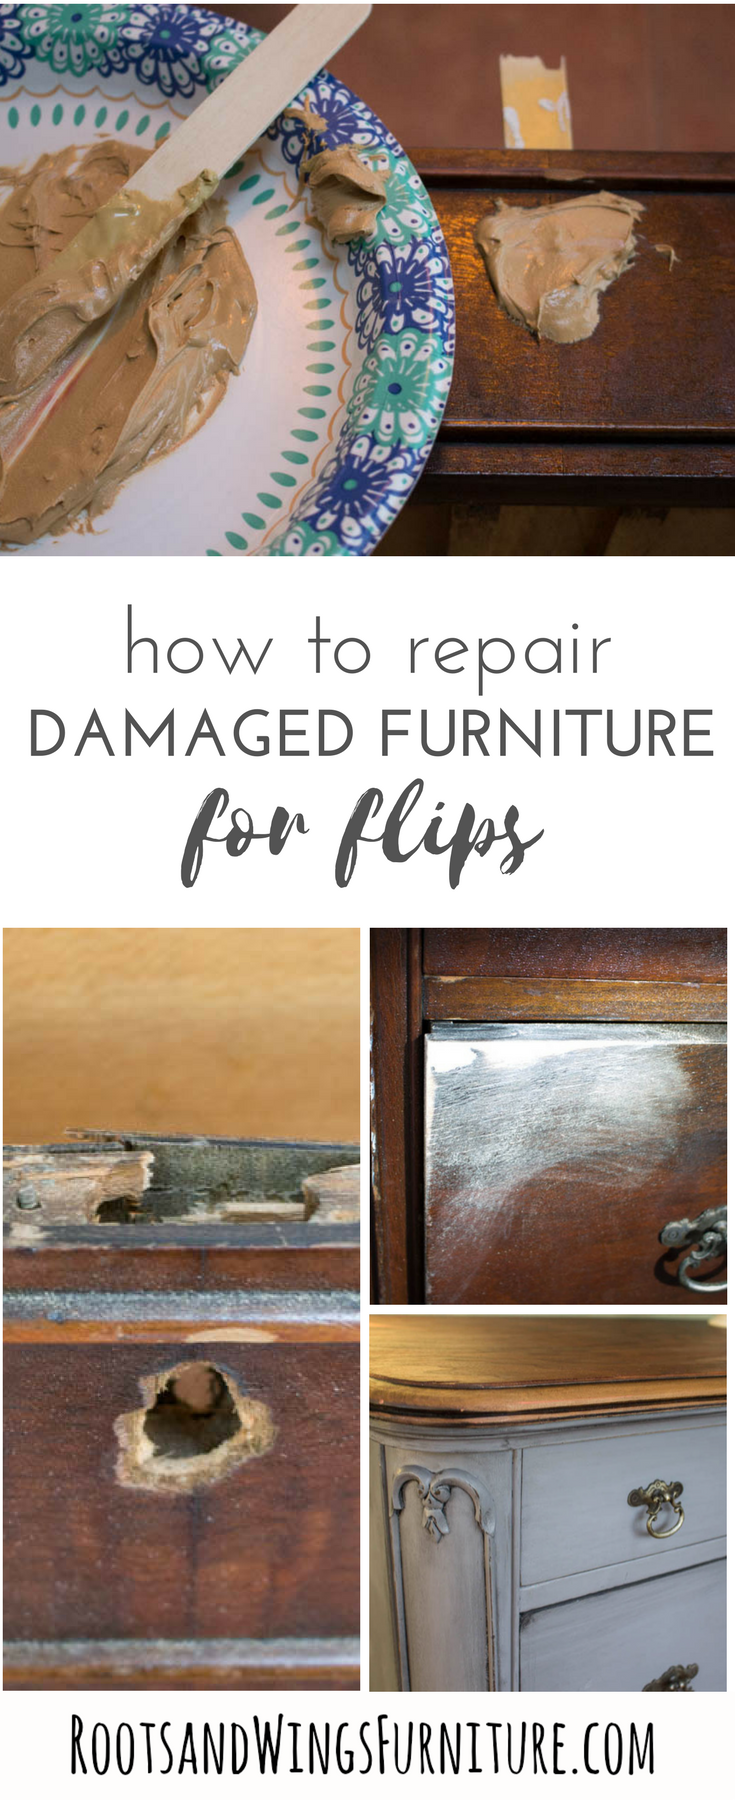 Furniture Repair Filling Large Holes In Wood Roots Wings Furniture Llc Furniture Repair Furniture Fix Flipping Furniture